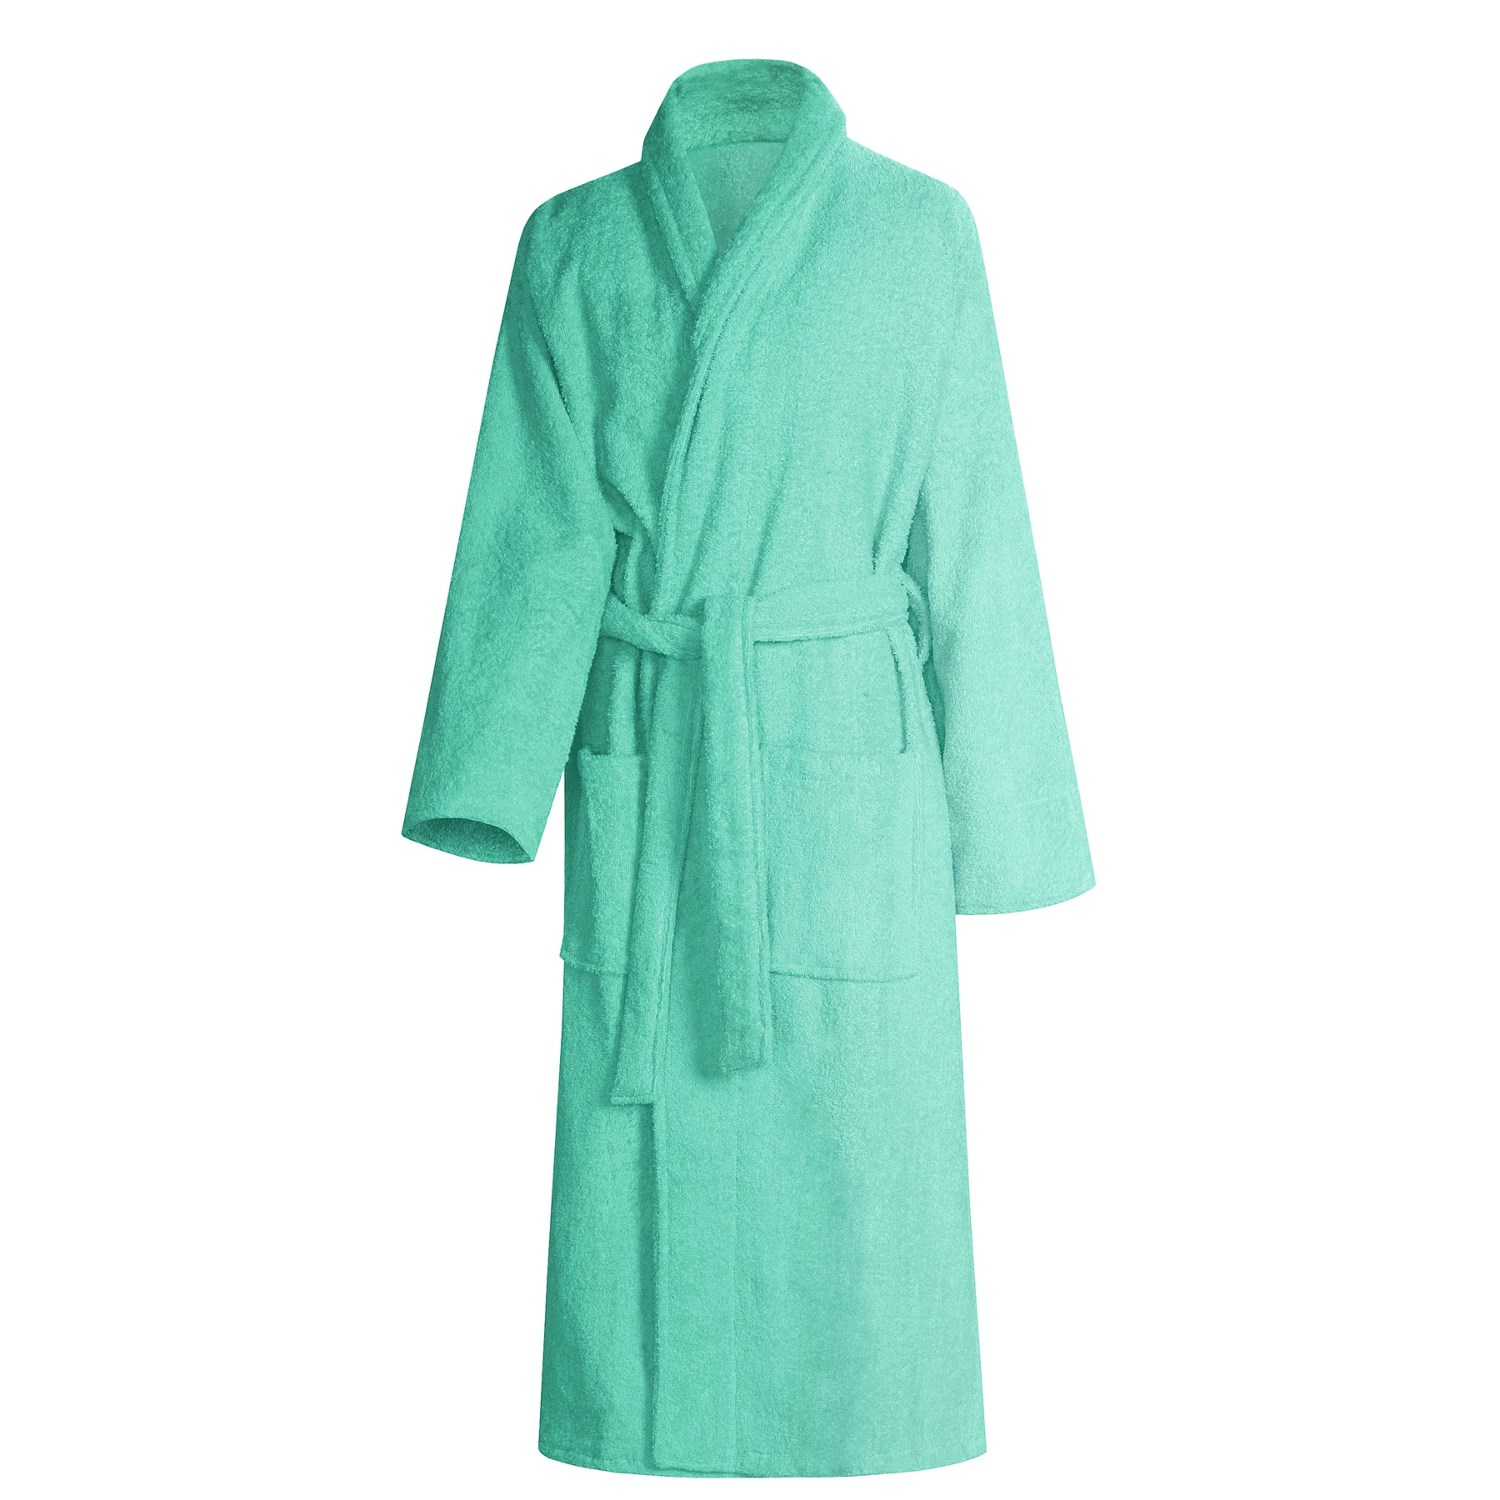 Our bamboo terry robe is as soft as silk and offers warmth and absorbency without becoming too heavy. It is the perfect robe for toweling off. The special blend of cotton and bamboo viscose fibers are softer than traditional cotton and are breathable and durable. Bamboo terry robe. Best bathrobe I ever had! By Joseph F. (Bedminster /5(71).